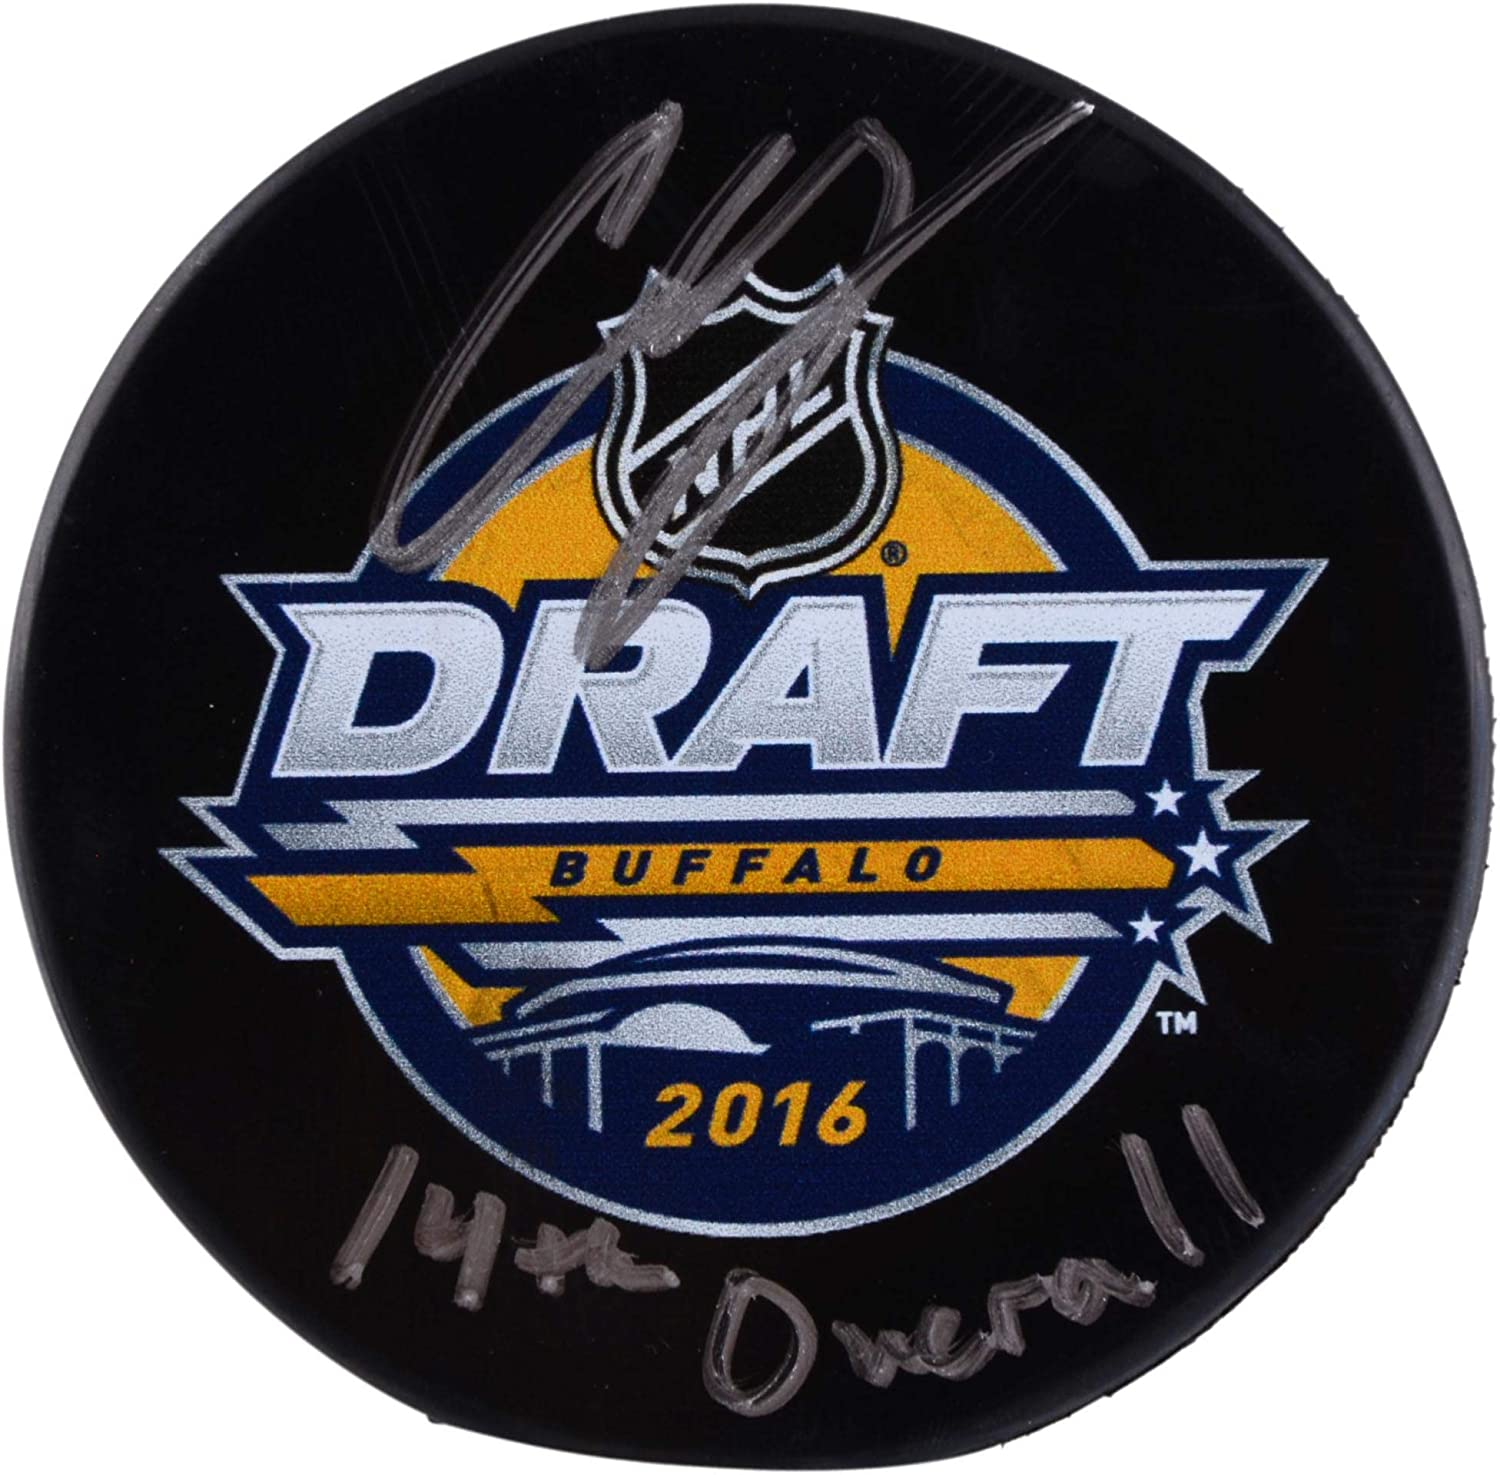 Charlie McAvoy Boston Bruins Autographed 2016 NHL Draft Logo Hockey Puck with #14 Pick Inscription - Fanatics Authentic Certified